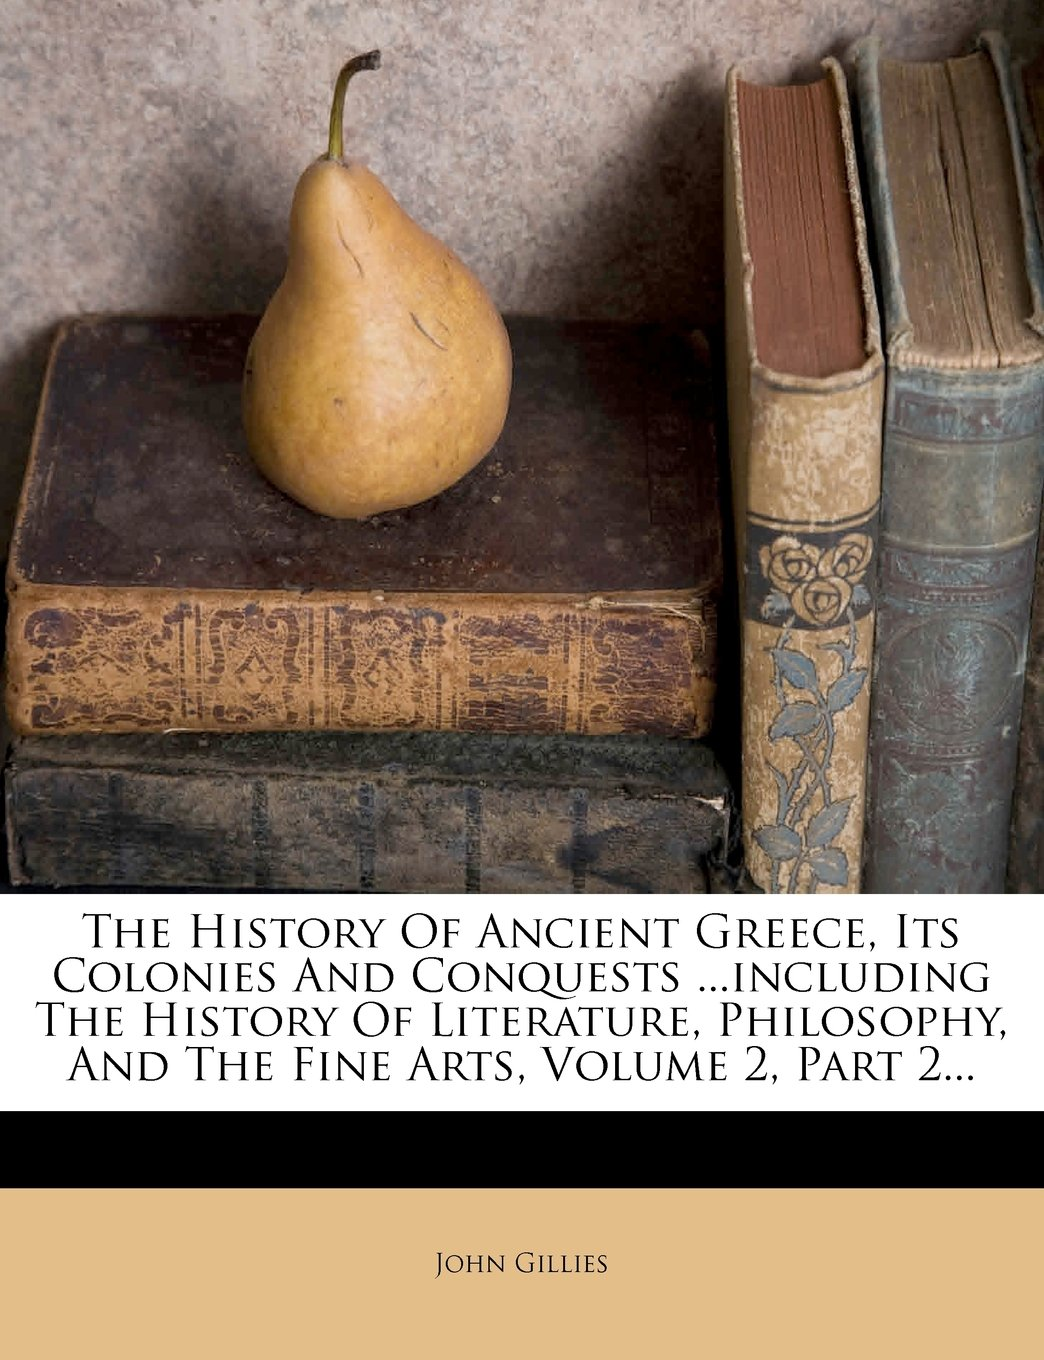 Download The History Of Ancient Greece, Its Colonies And Conquests ...including The History Of Literature, Philosophy, And The Fine Arts, Volume 2, Part 2... ebook